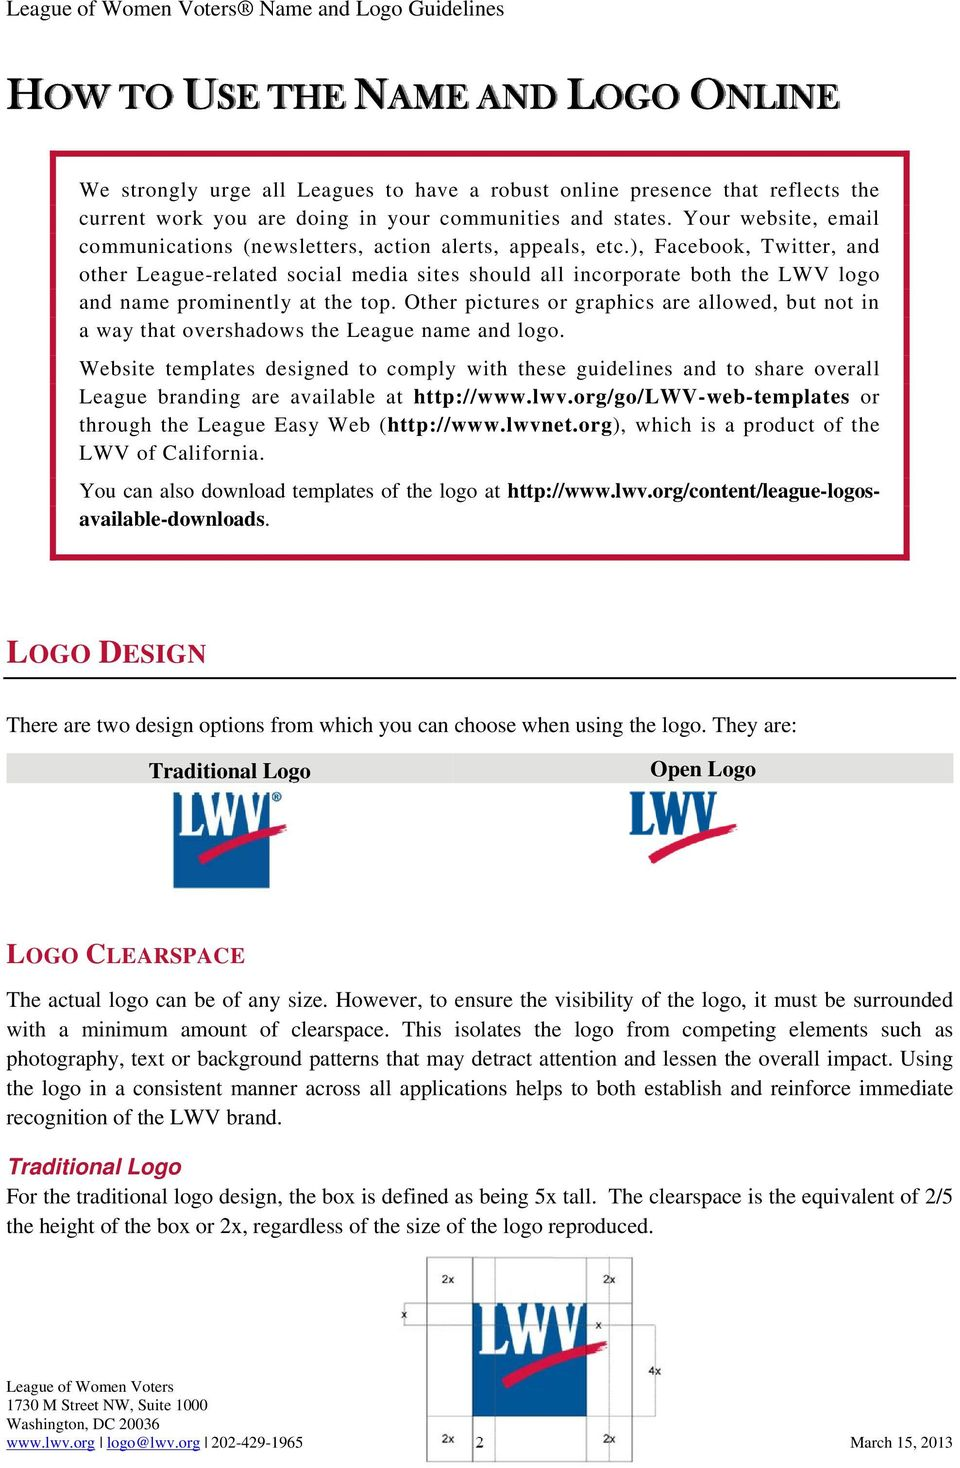 ), Facebook, Twitter, and other League-related social media sites should all incorporate both the LWV logo and name prominently at the top.